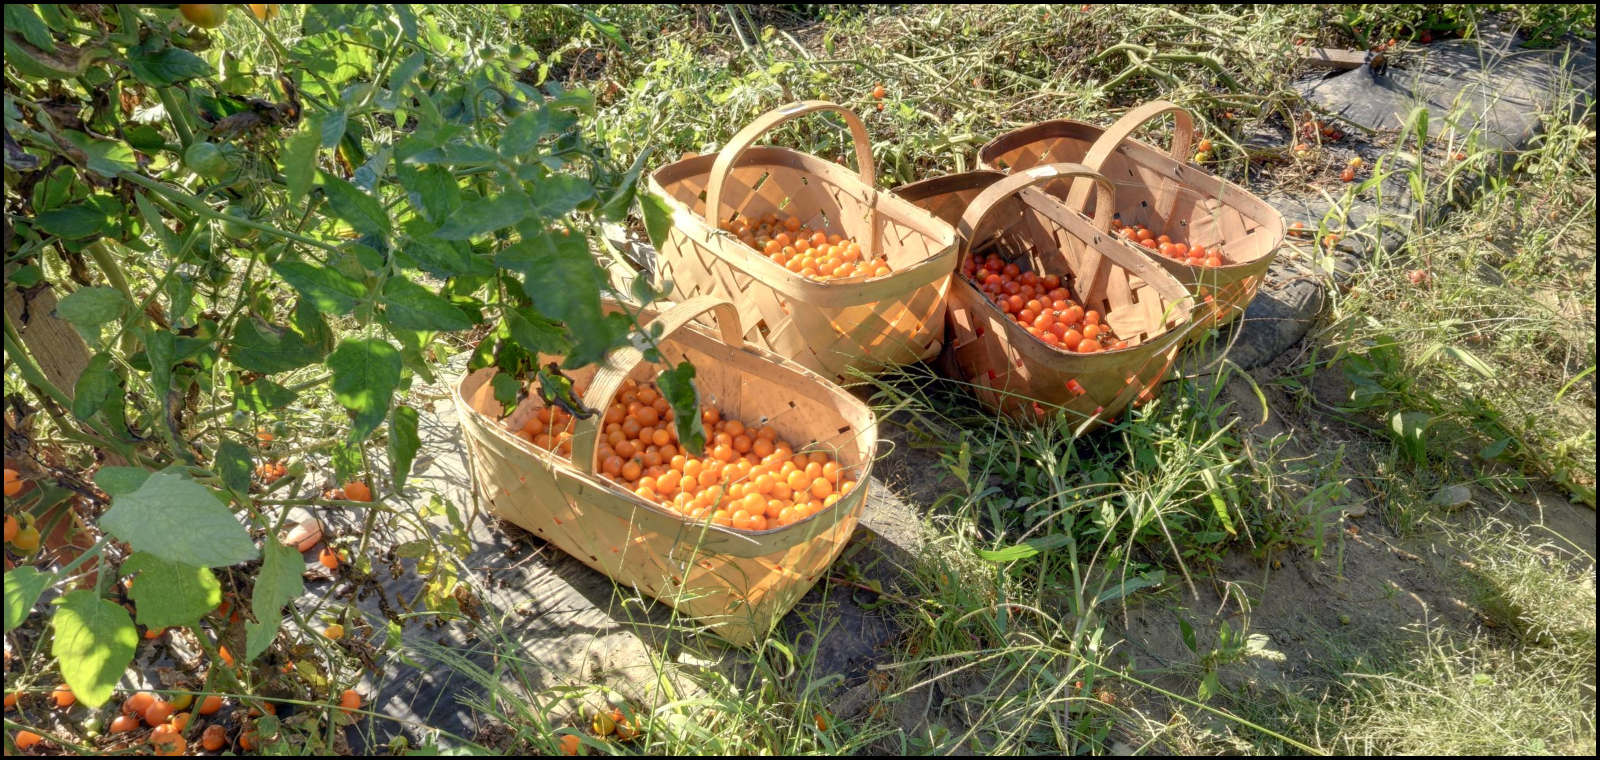 Tomato Harvest at Verrill Farm